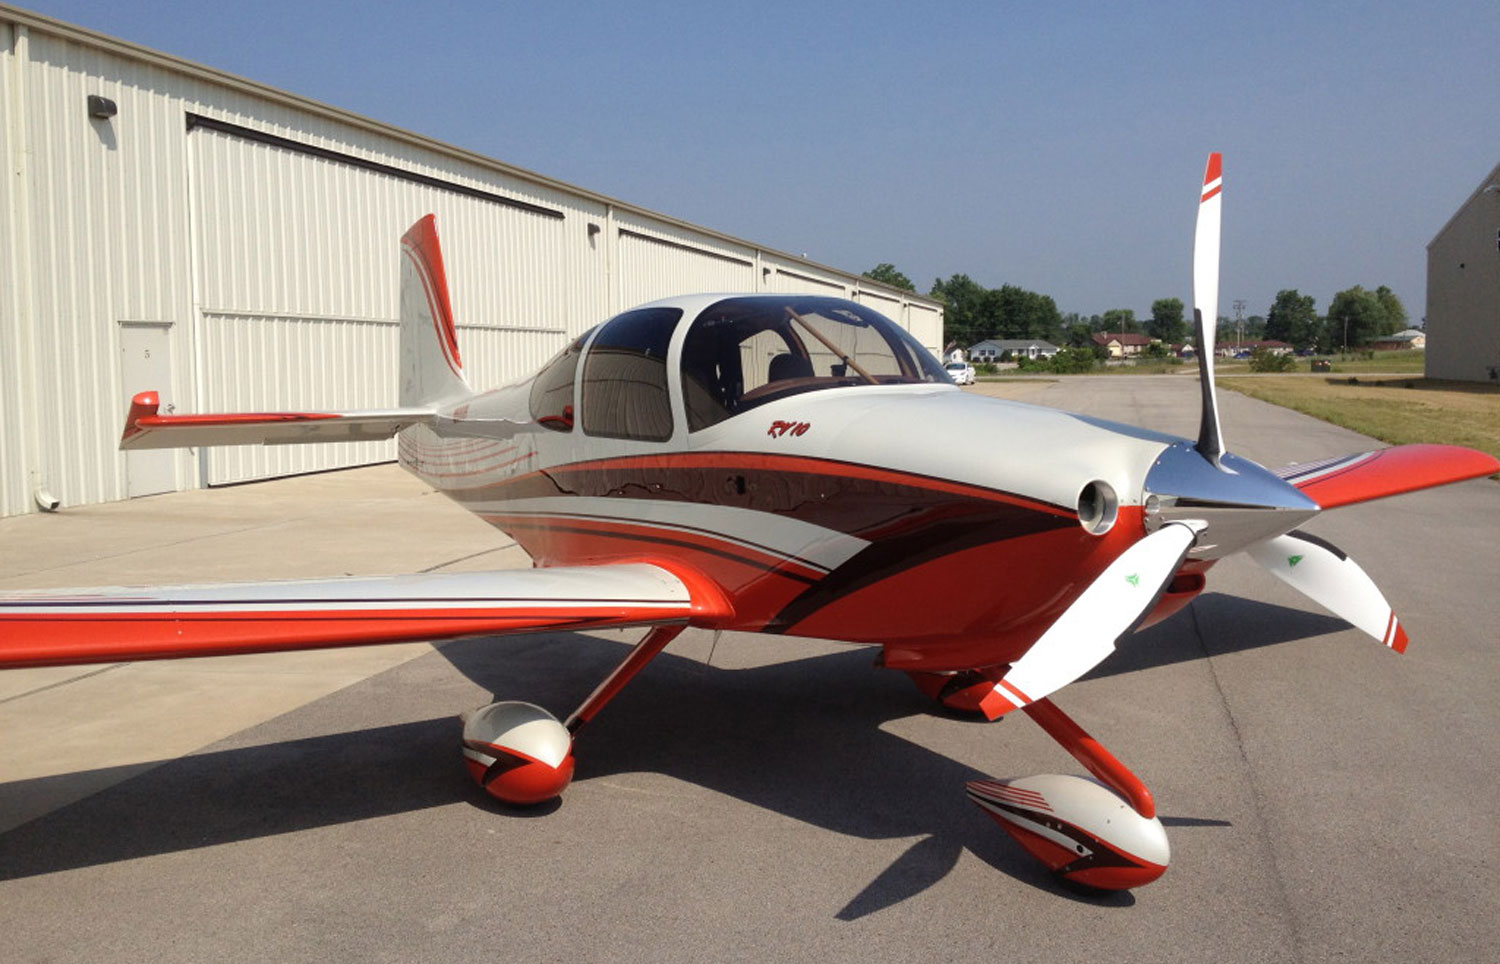 Caa Approves Night And Ifr Flight For Permit Aircraft Flyer